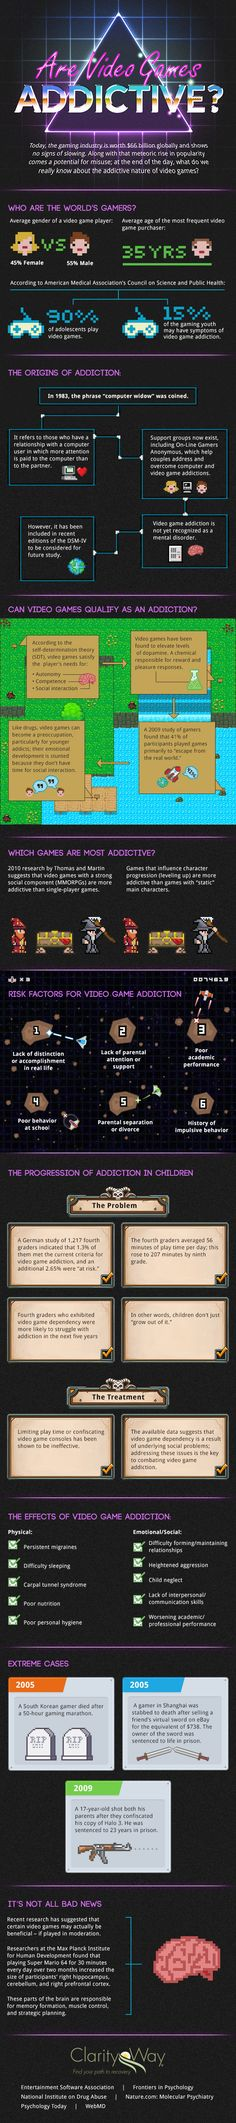 Are Video Games Addictive? #infographic #Games #VideoGames #PcGames